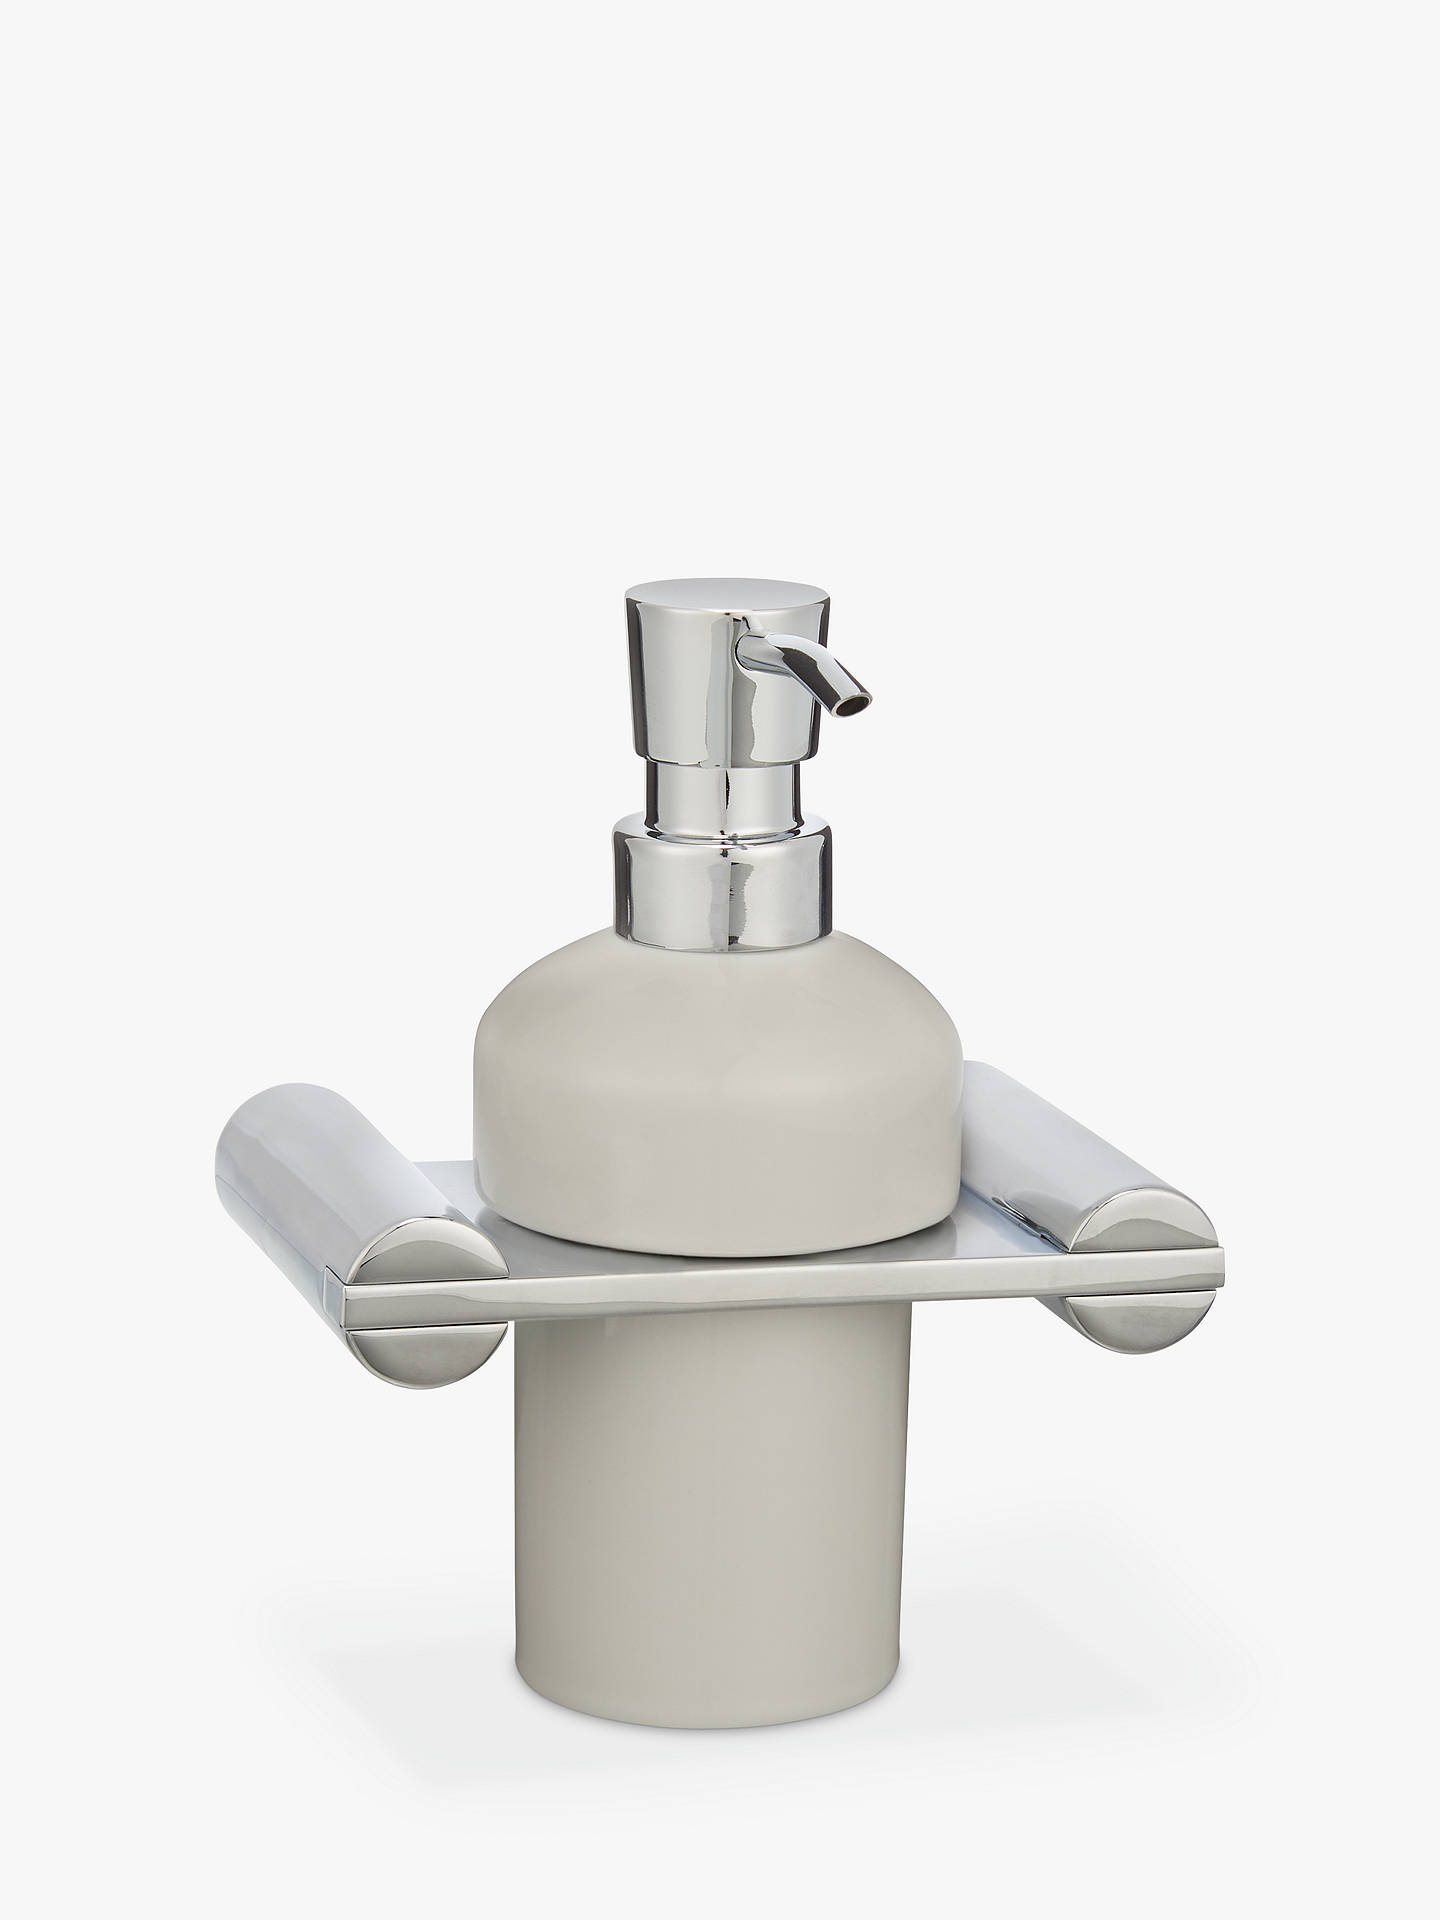 BuyJohn Lewis & Partners Solo Wall Mounted Soap Dispenser, White/Chrome Online at johnlewis.com